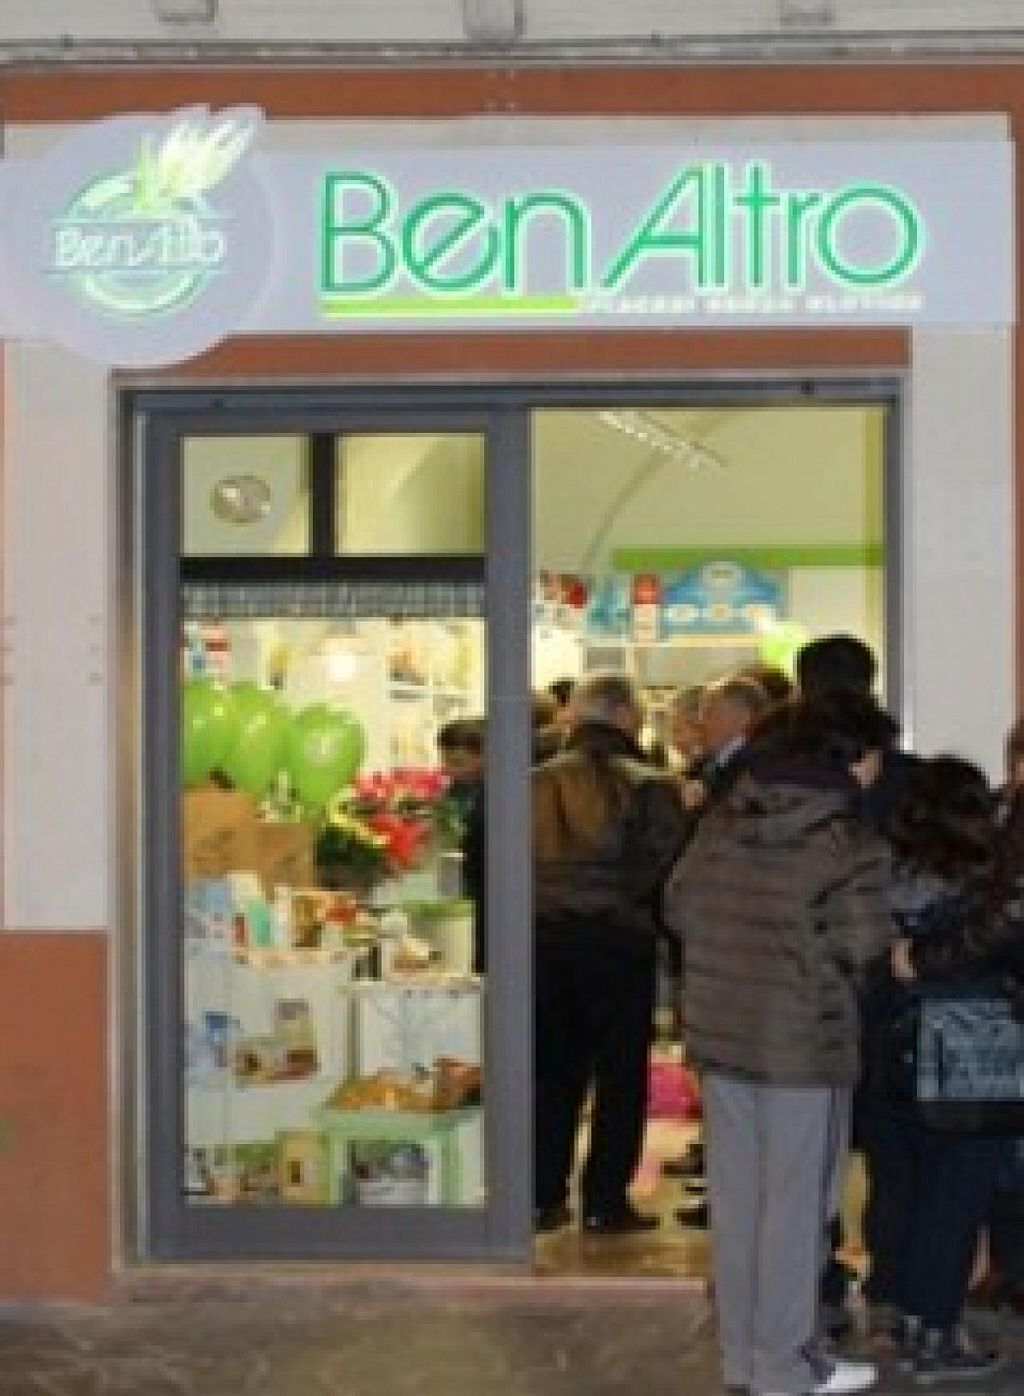 """Photo of BenAltro  by <a href=""""/members/profile/community"""">community</a> <br/>BenAltro <br/> July 19, 2015  - <a href='/contact/abuse/image/60801/109900'>Report</a>"""